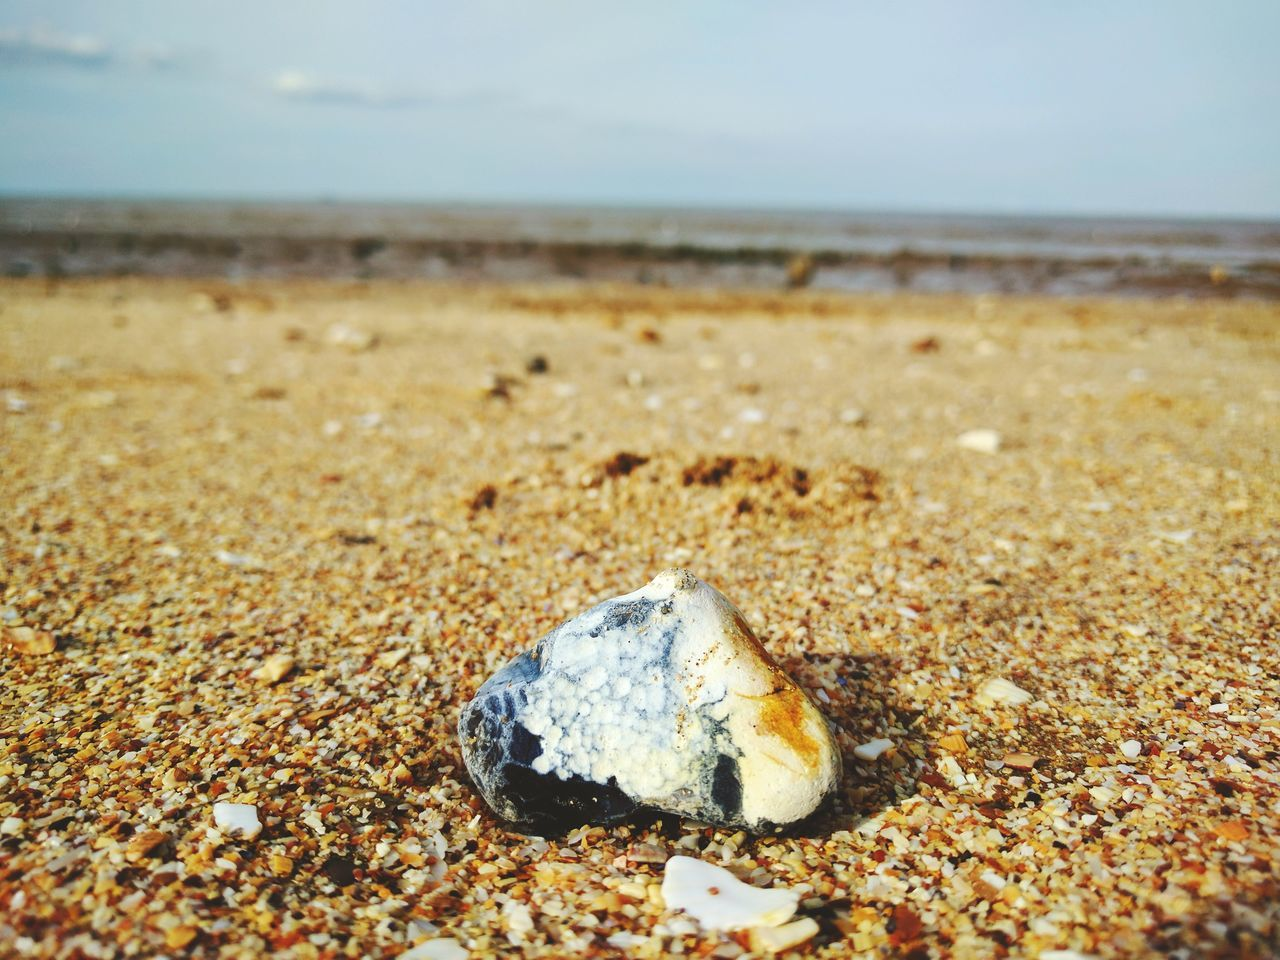 Focus Beach Sand Day Sea No People Nature Outdoors Close-up Sky Stone Rock Flint British Beaches The Great Outdoors - 2017 EyeEm Awards